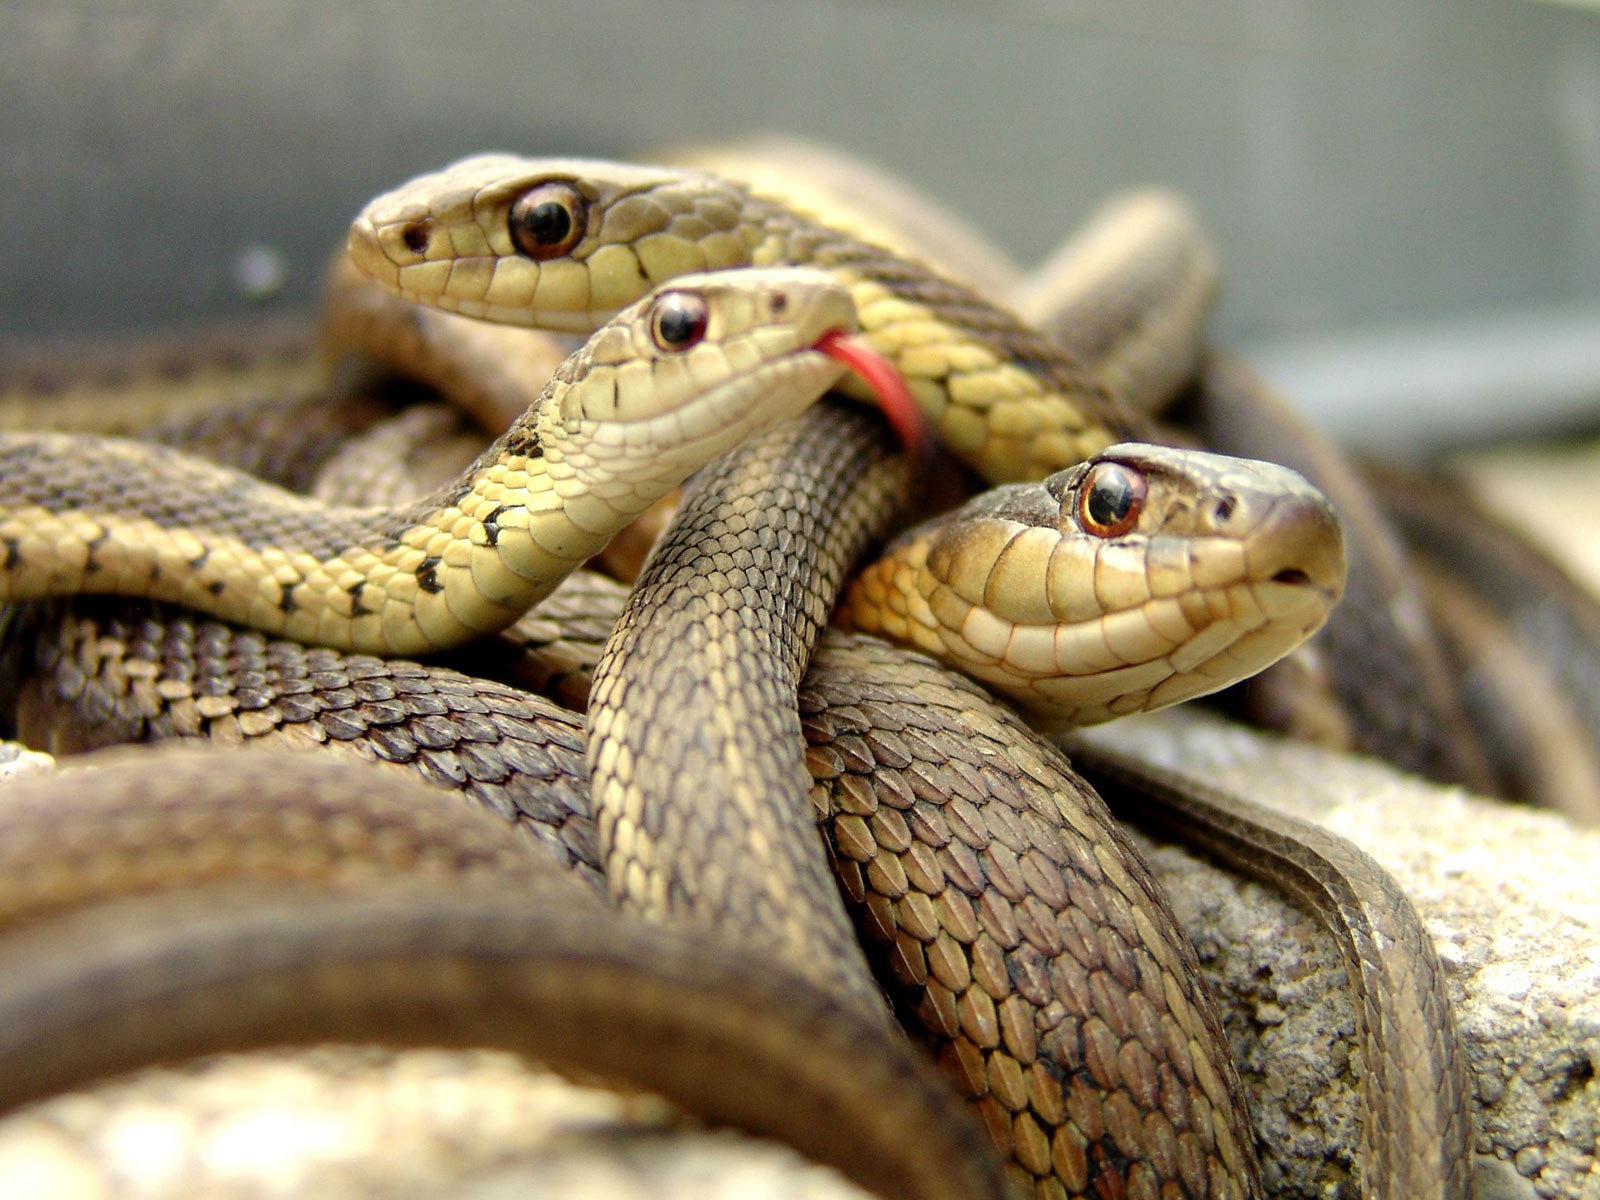 http://3.bp.blogspot.com/-wNdsb_q788c/T4YeyAECqUI/AAAAAAAAjW4/pDXaTiCbk6c/s1600/The-best-top-desktop-snake-wallpapers-hd-snakes-wallpaper-12-three-snakes.jpg